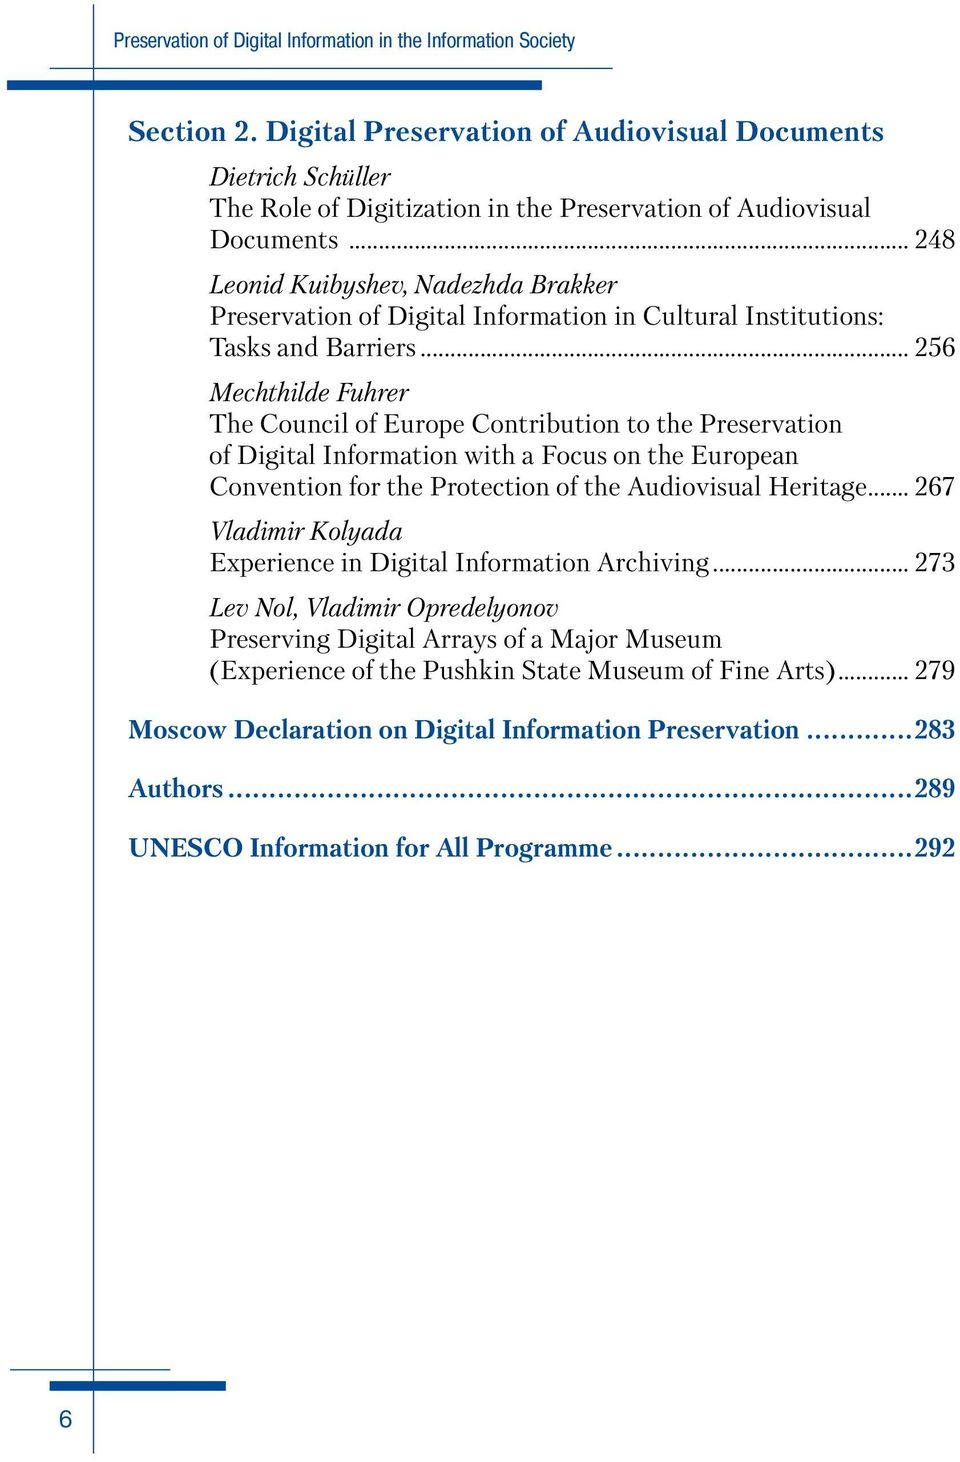 .. 248 Leonid Kuibyshev, Nadezhda Brakker Preservation of Digital Information in Cultural Institutions: Tasks and Barriers.